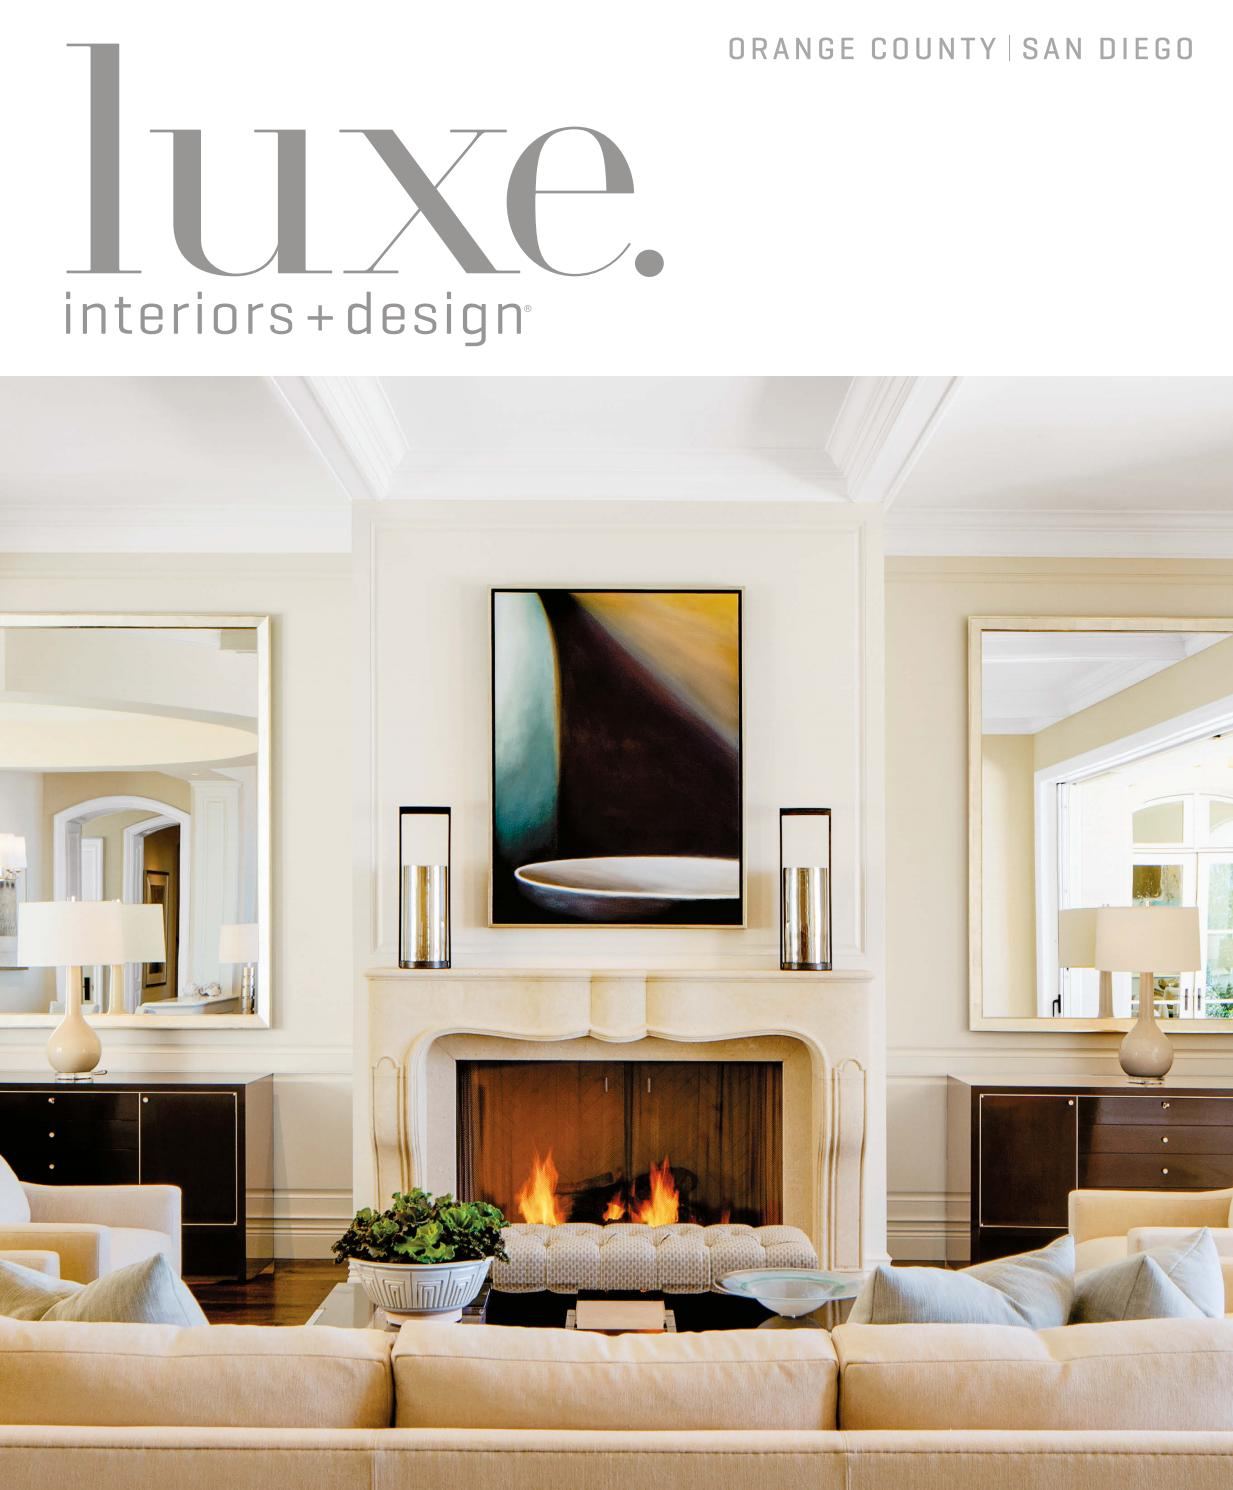 Tete De Lit Alcove luxe magazine november 2016 orange county/san diego